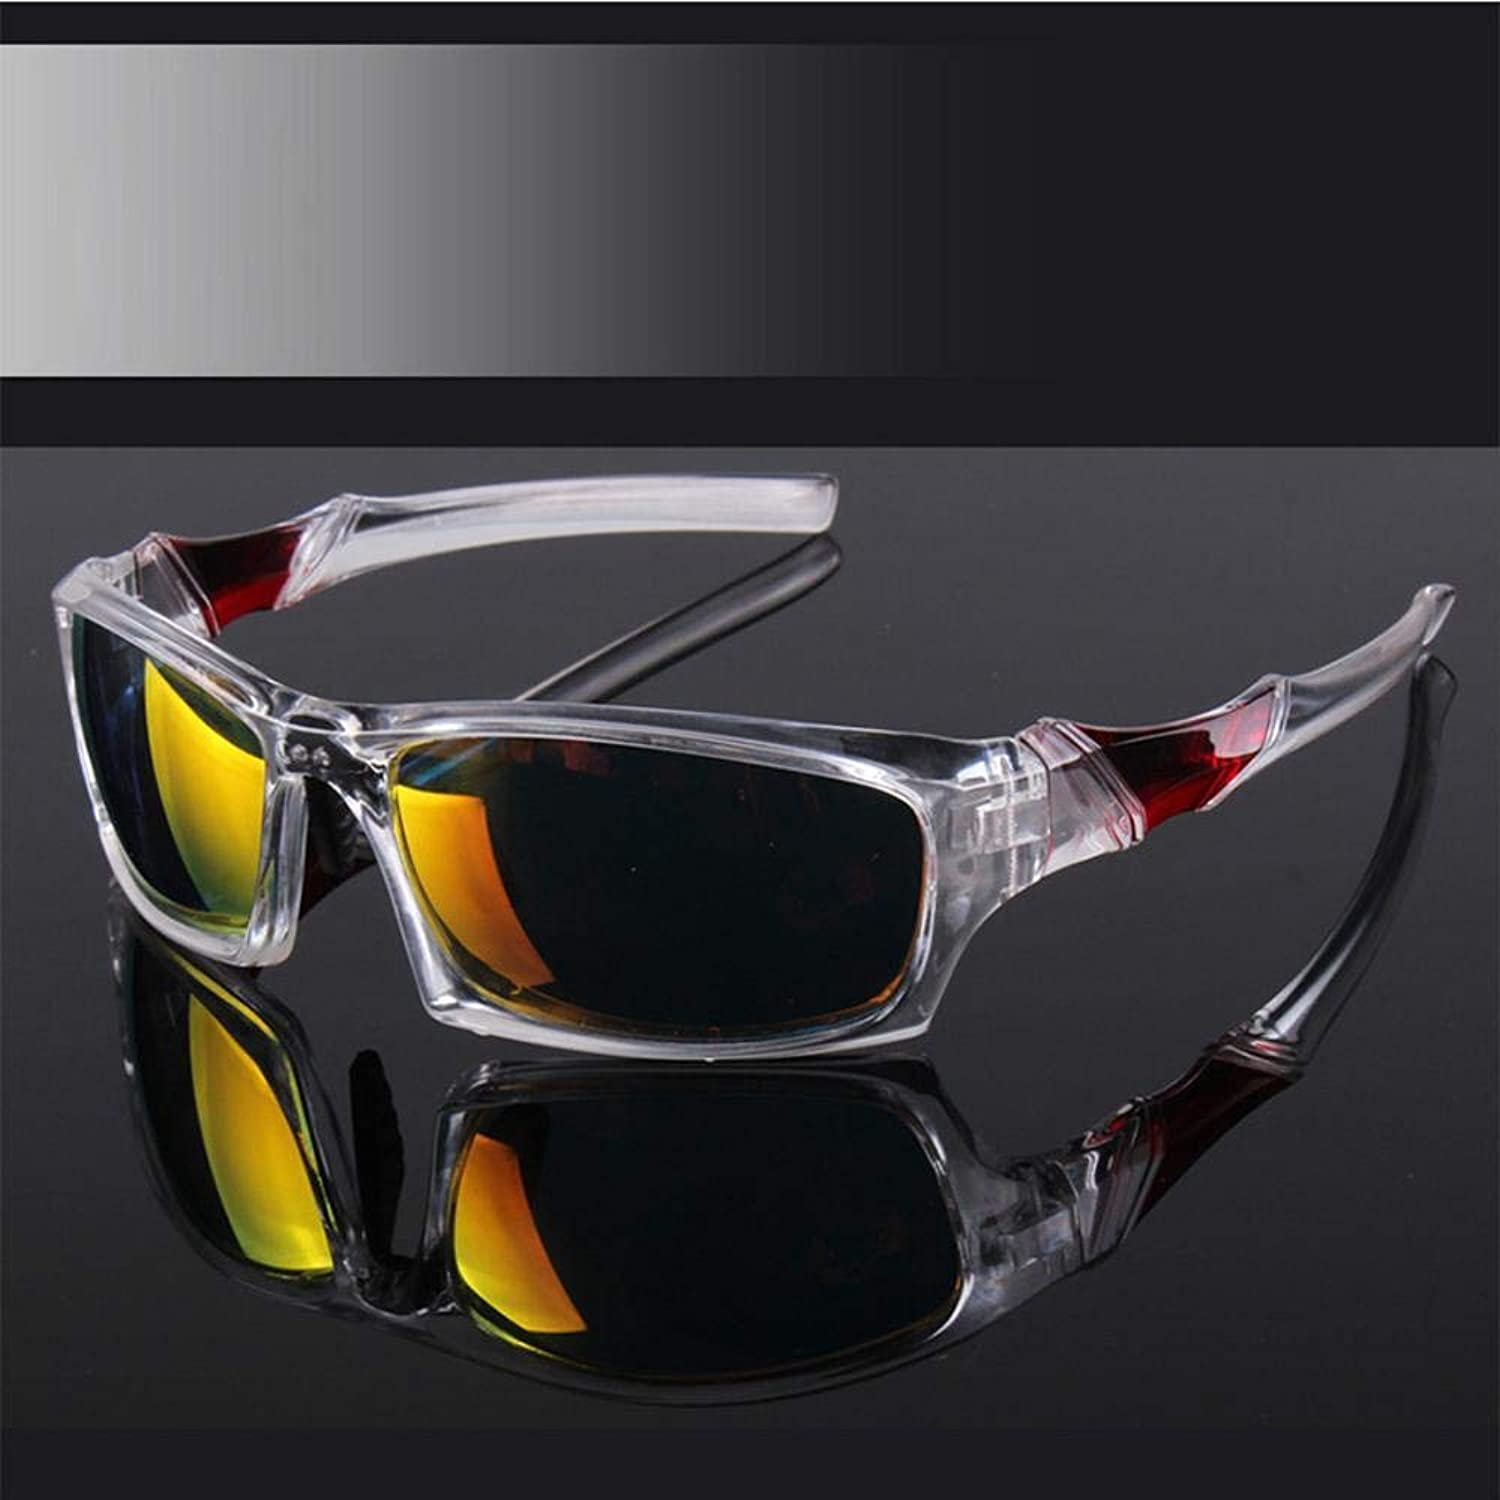 Gquan Predective Glasses Men and Women General Outdoor Sunglasses Exercise Glasses Riding Sunglasses Windproof Mirror WindBlown Glasses